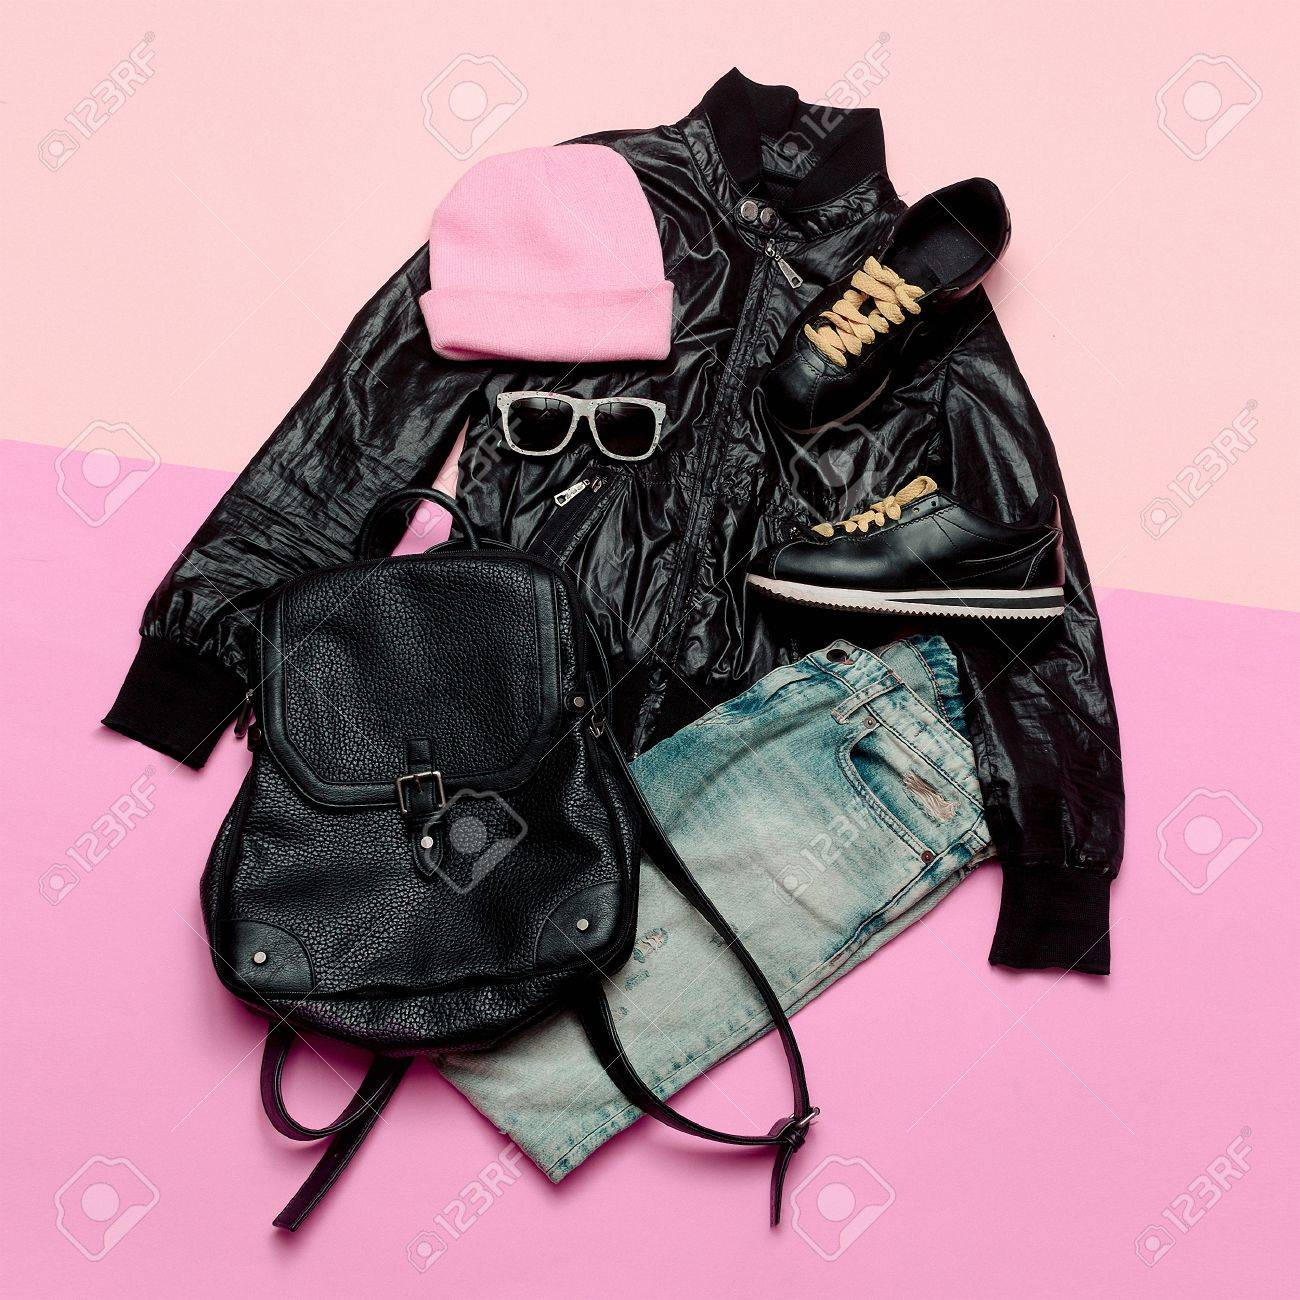 75e818281ed Hipster Urban Outfit girl. Stylish black clothes and bright accessories.  Stylish backpack and beanie